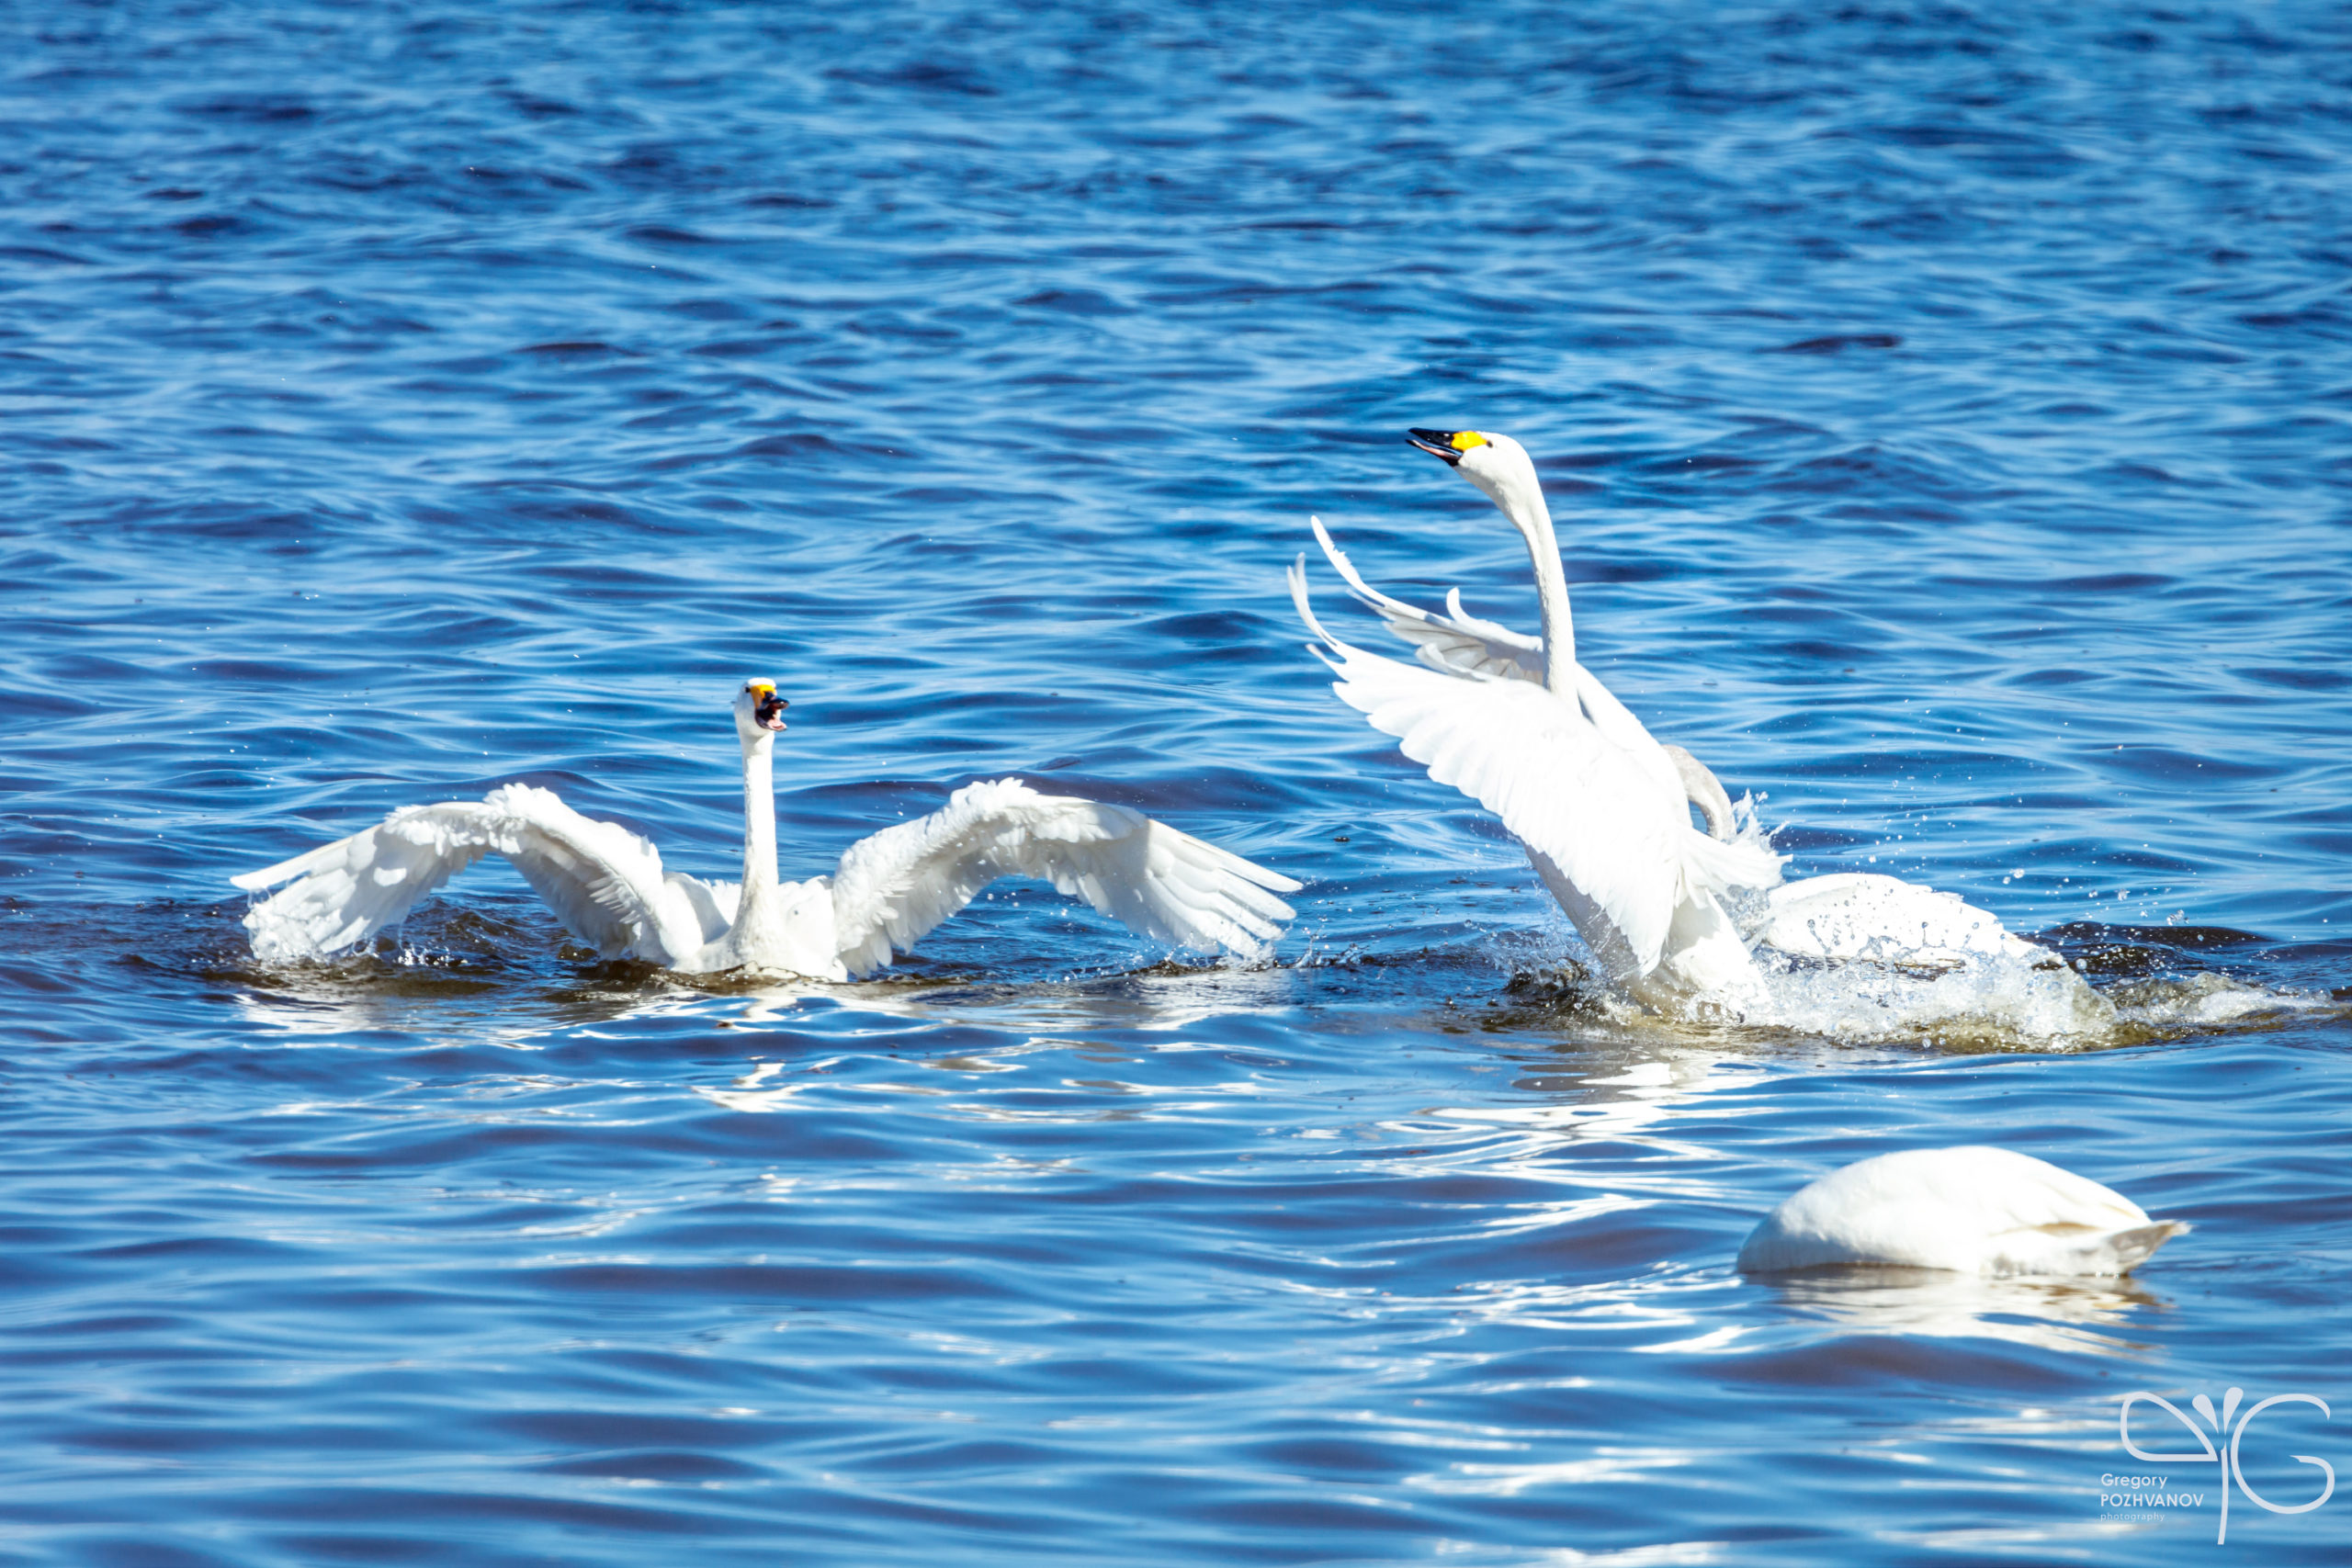 Swan fights | Gulf of Finland, Lebyazhje, April 2016